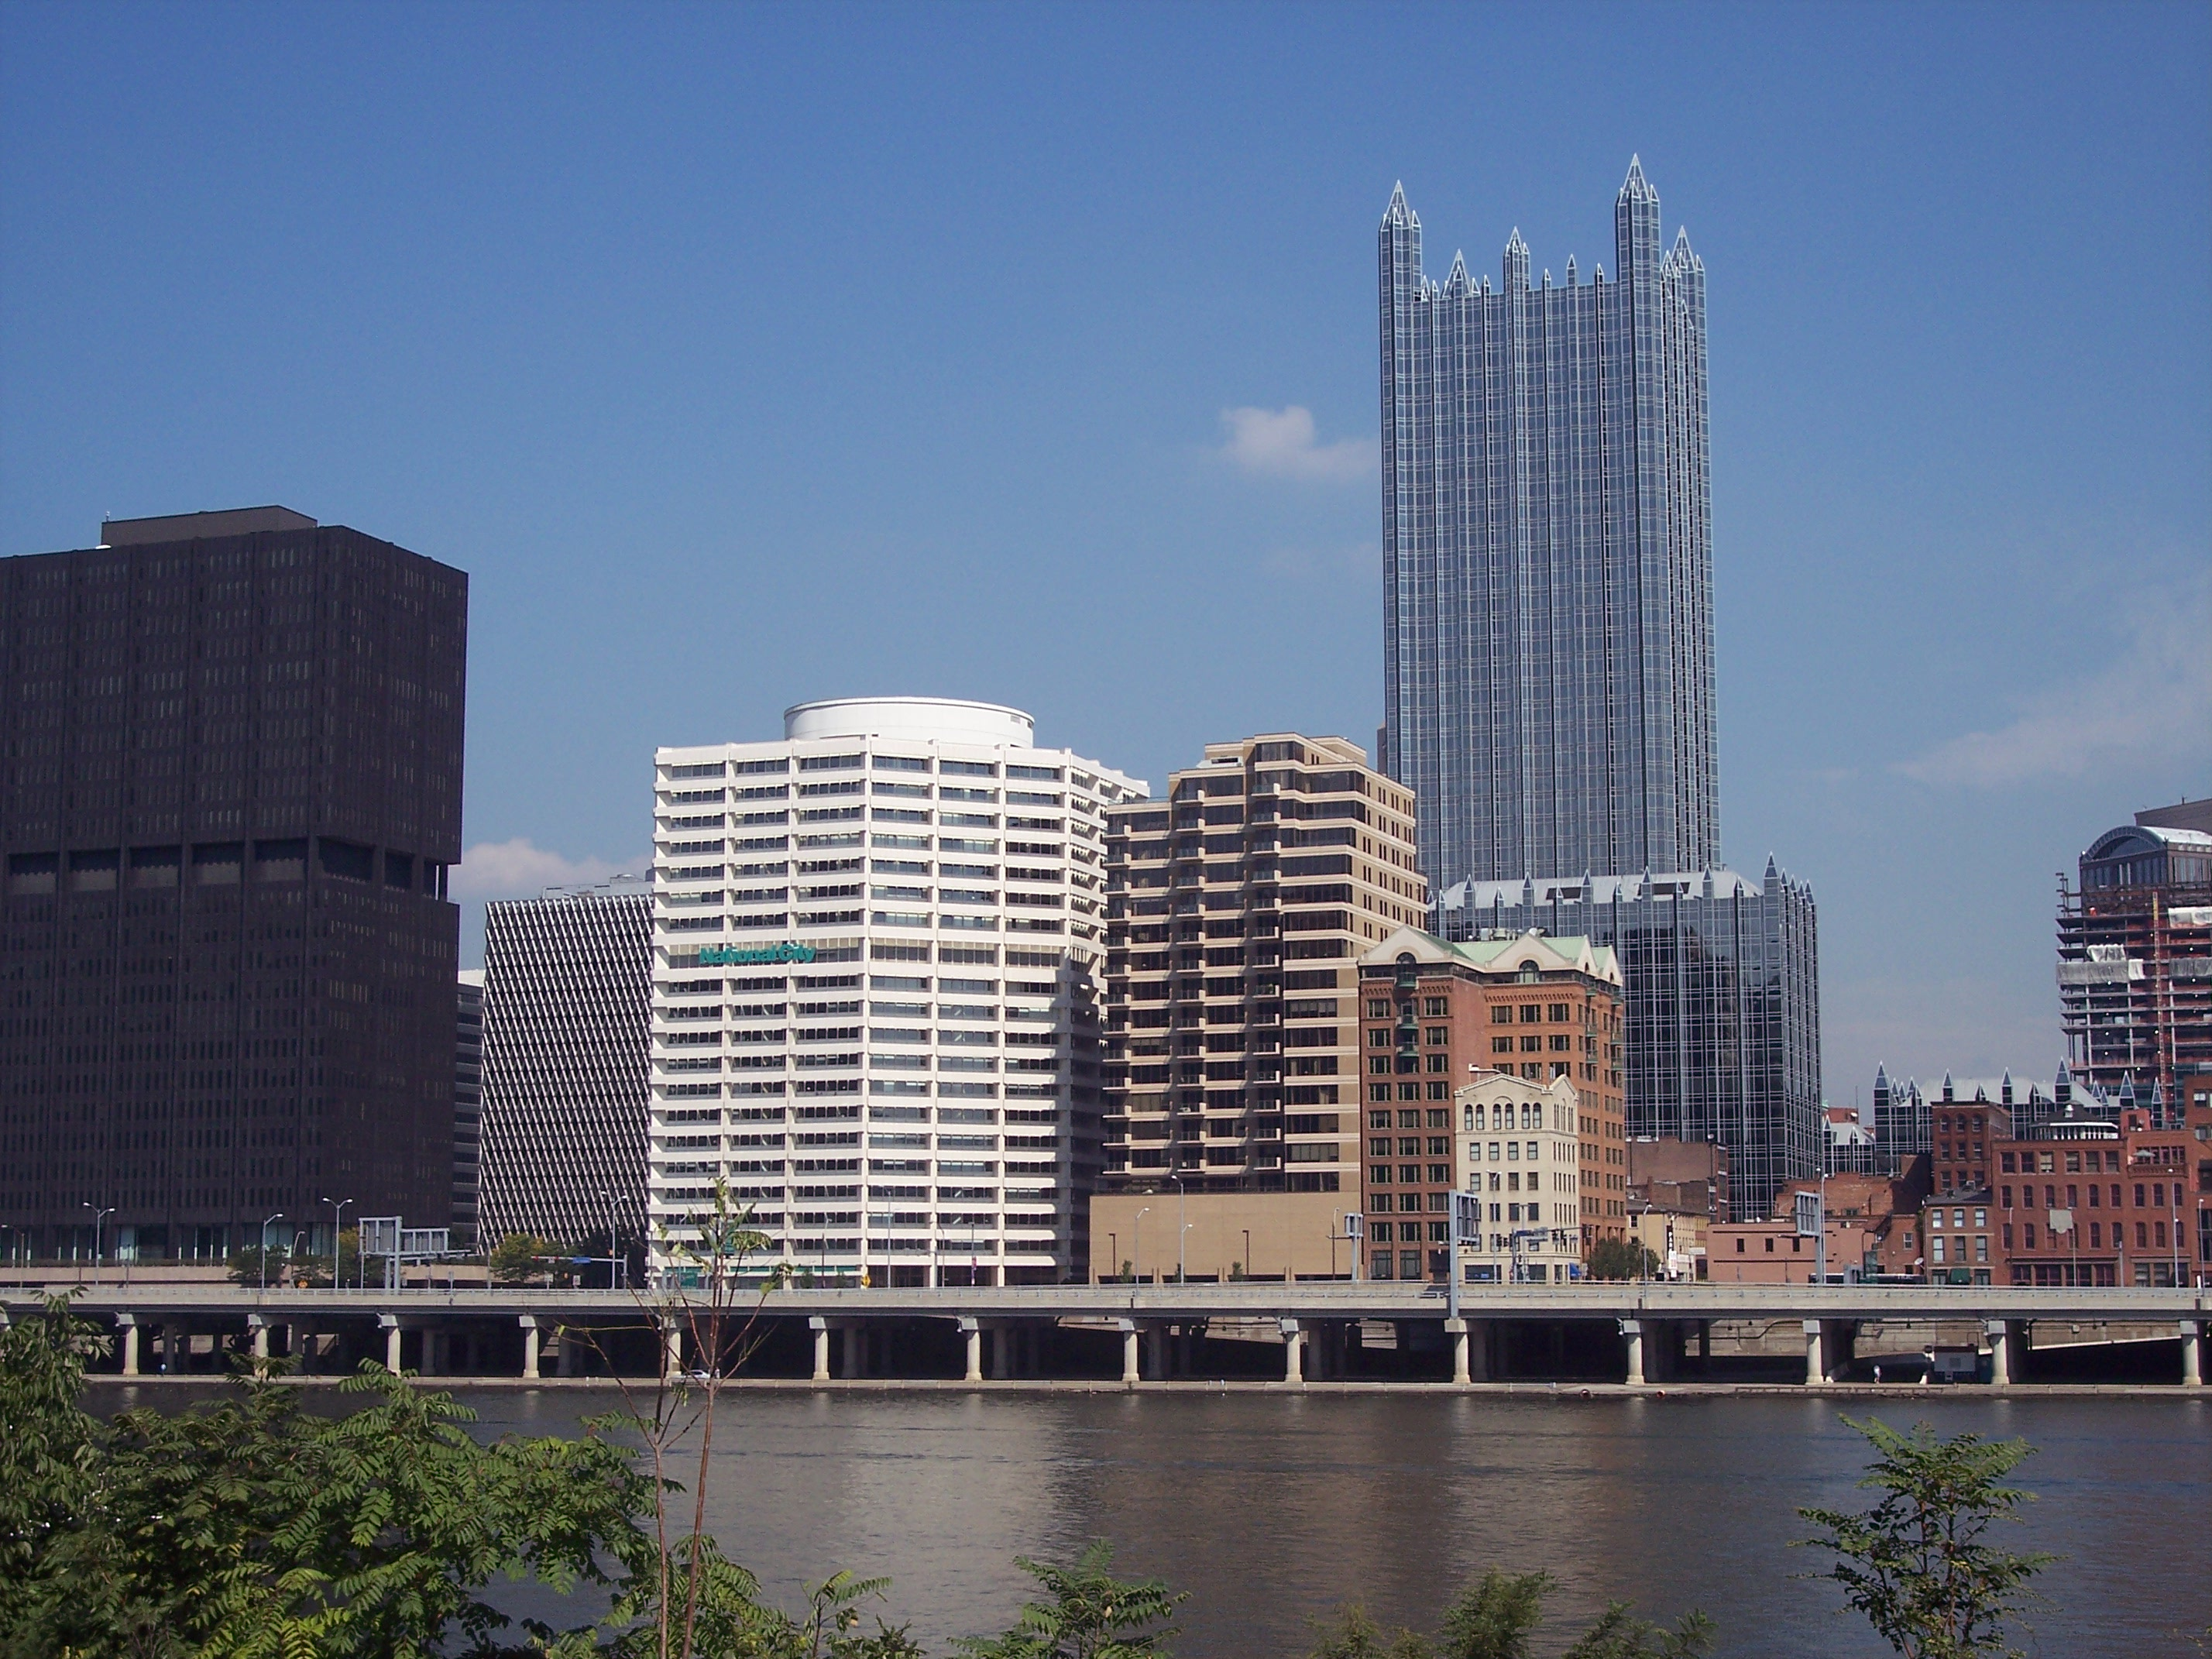 A Portion of Downtown Pittsburgh